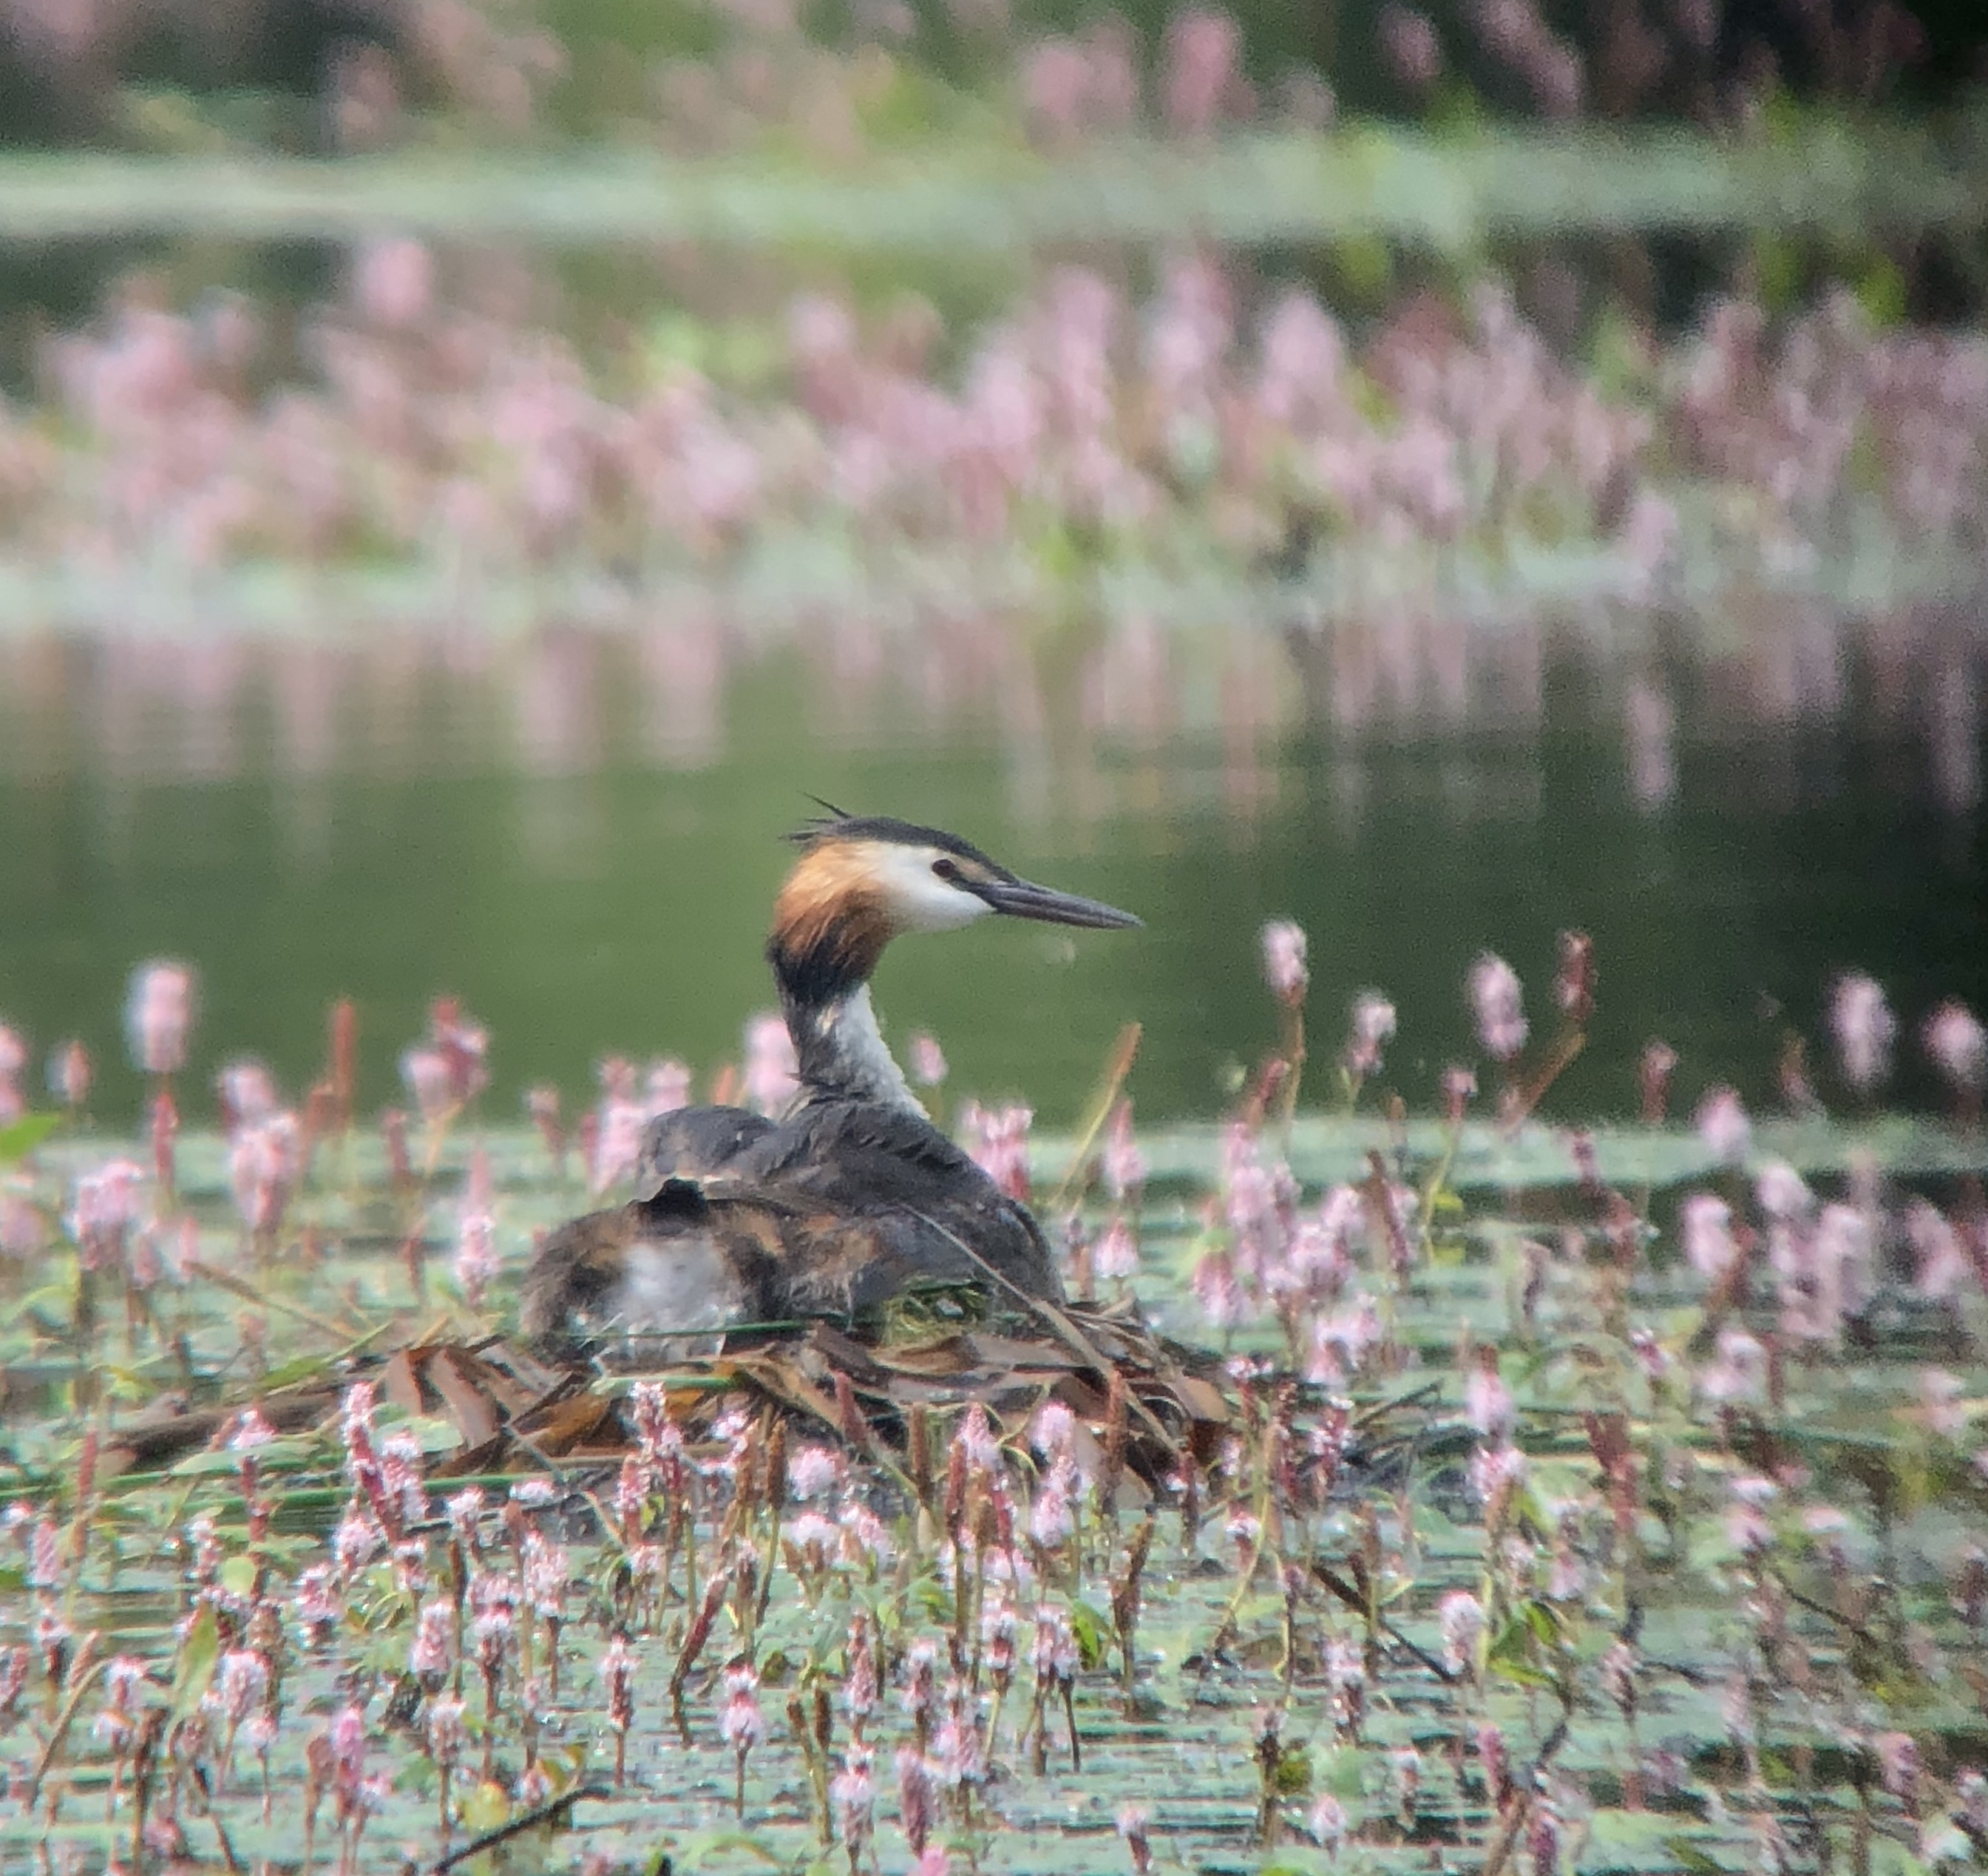 Digiscoped image of a Grebe at Hammer Pond - Simon King